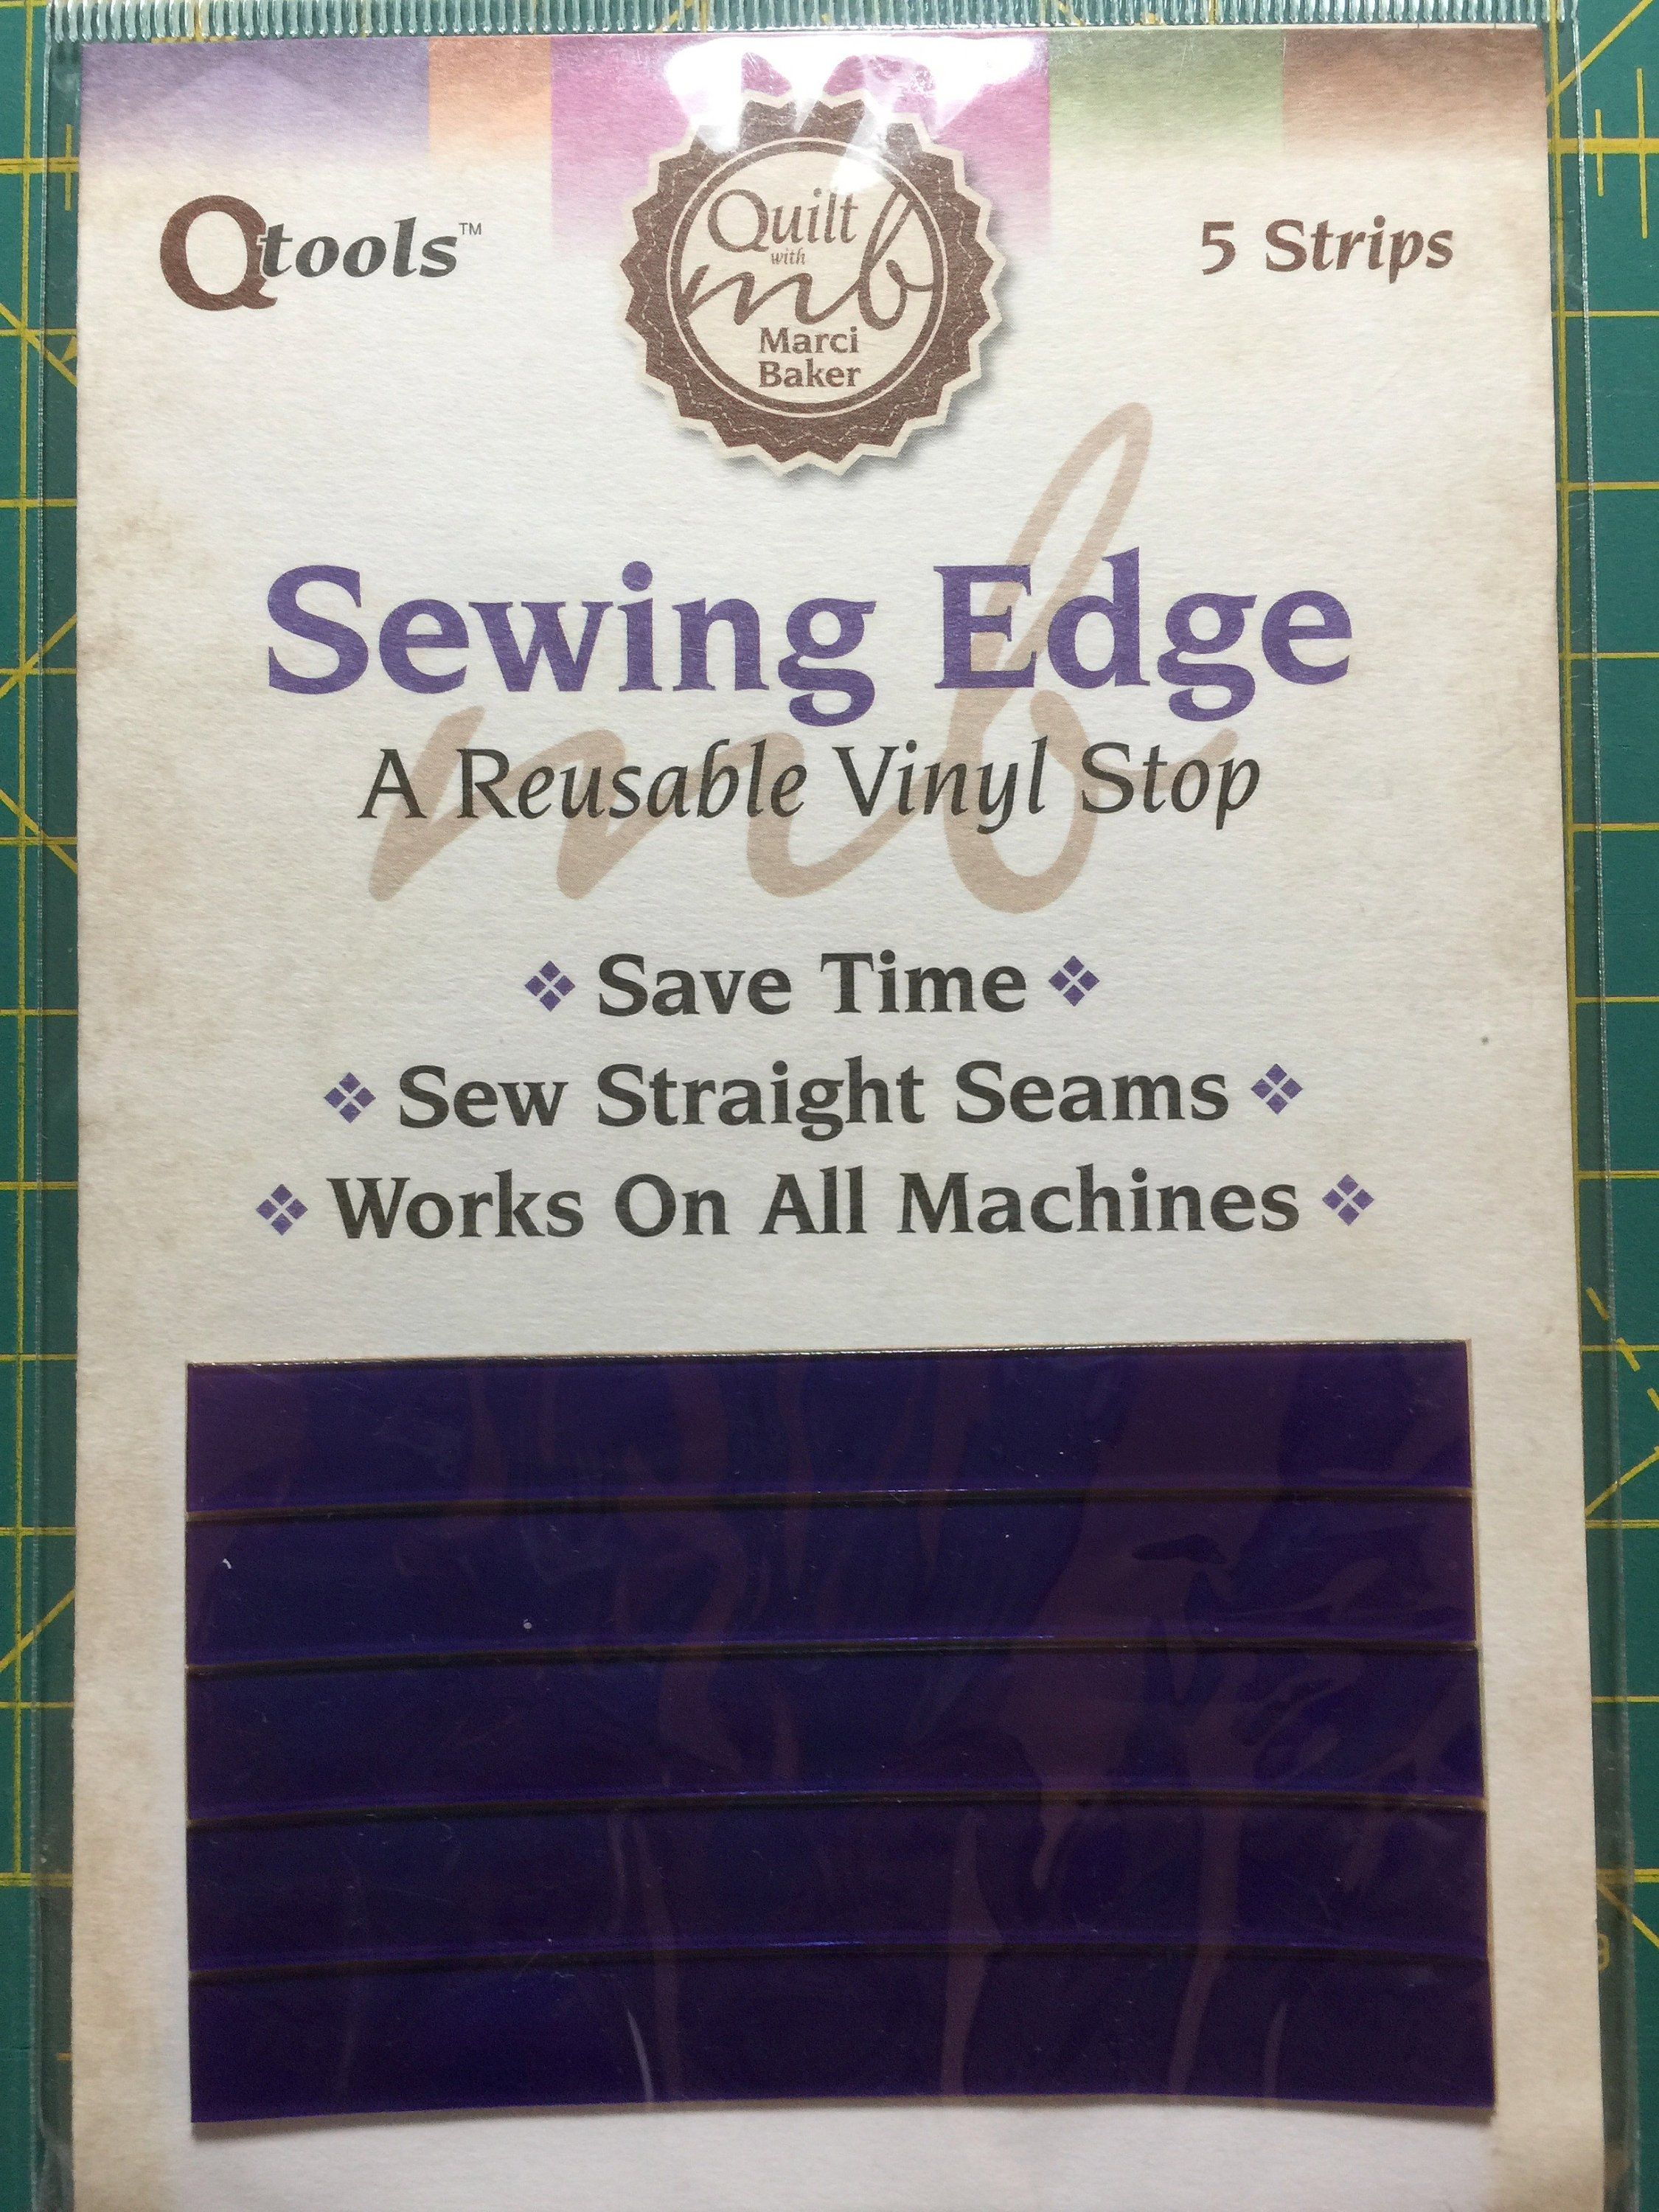 Sewing Edge Sewing Strips From Quilt With Marci Baker Sewing Guide Guide For Sewing Perfect Scant 1 4 Inch Quiltsy Destash Party By Lawso Sewing Quilts Sewing Hacks